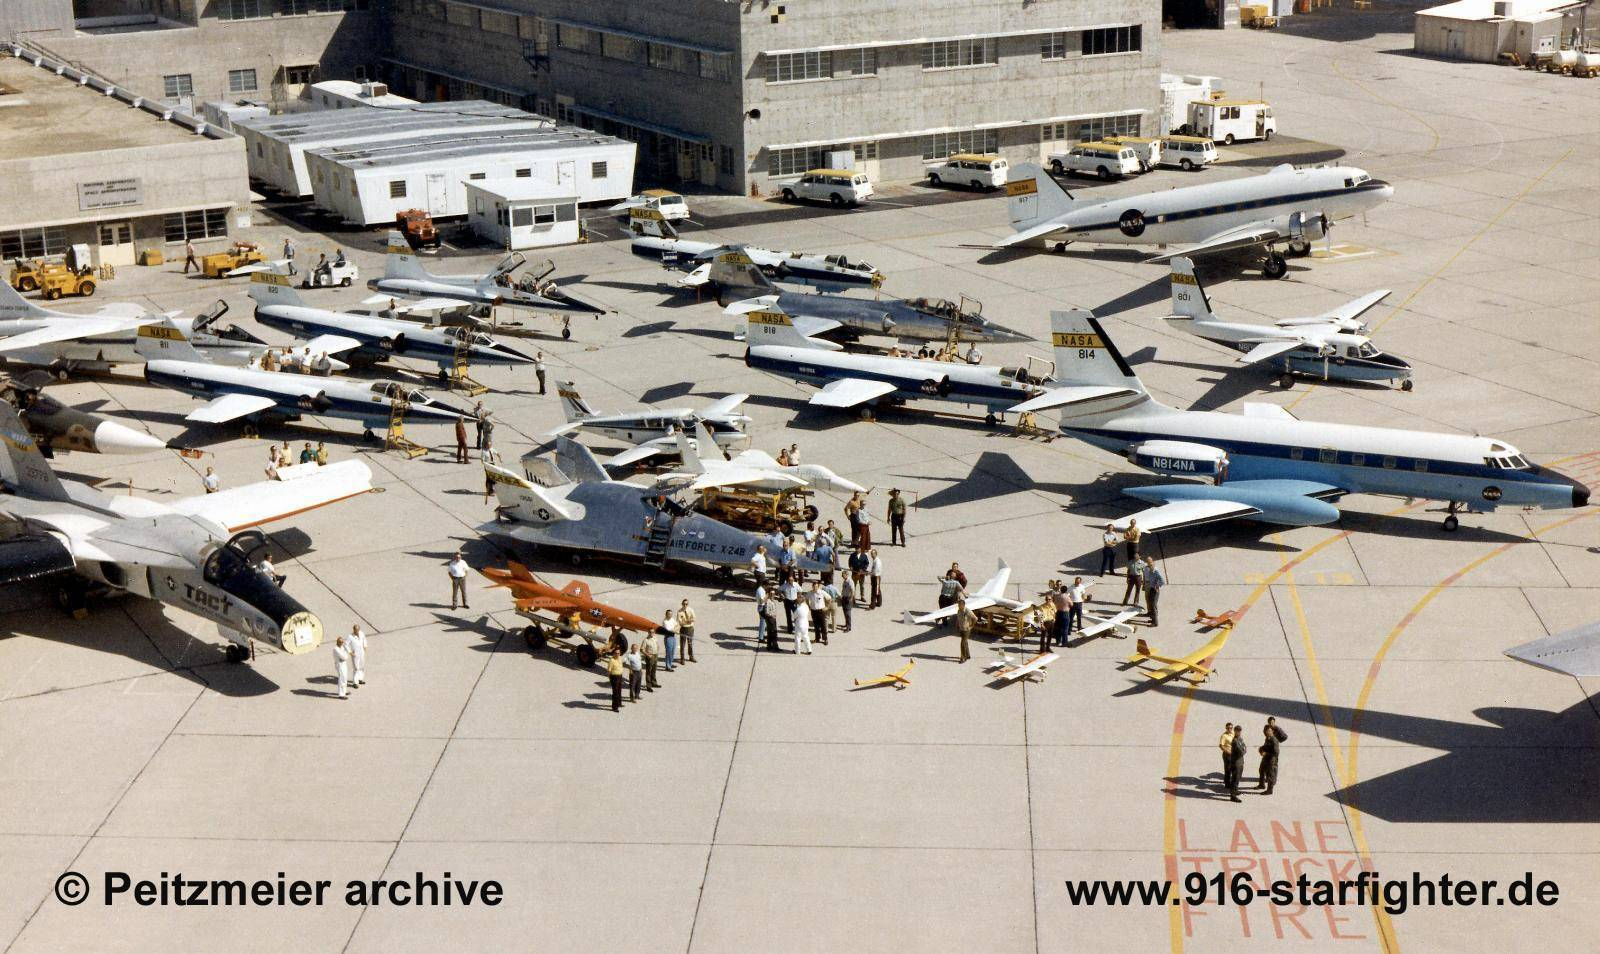 f 104 nasa dryden test fleet - photo #34